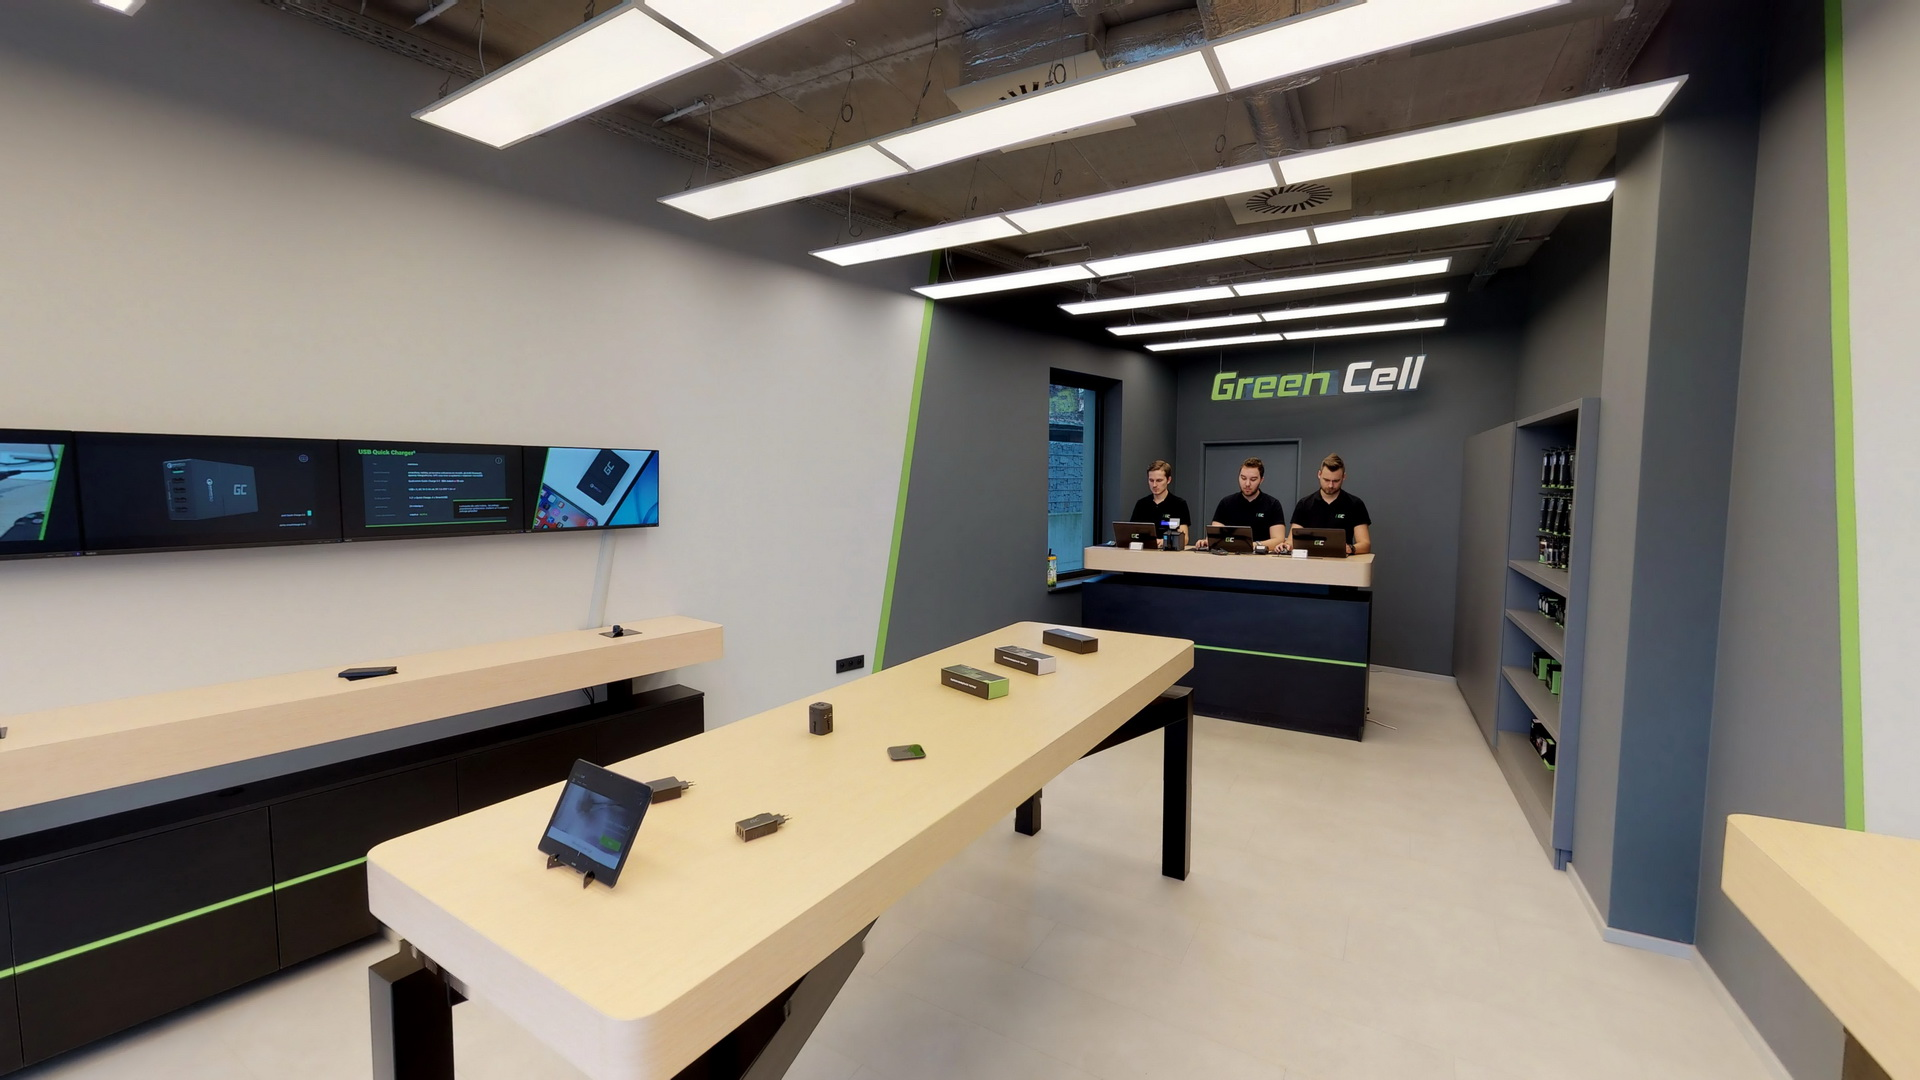 greencell showroom wirtualny spacer